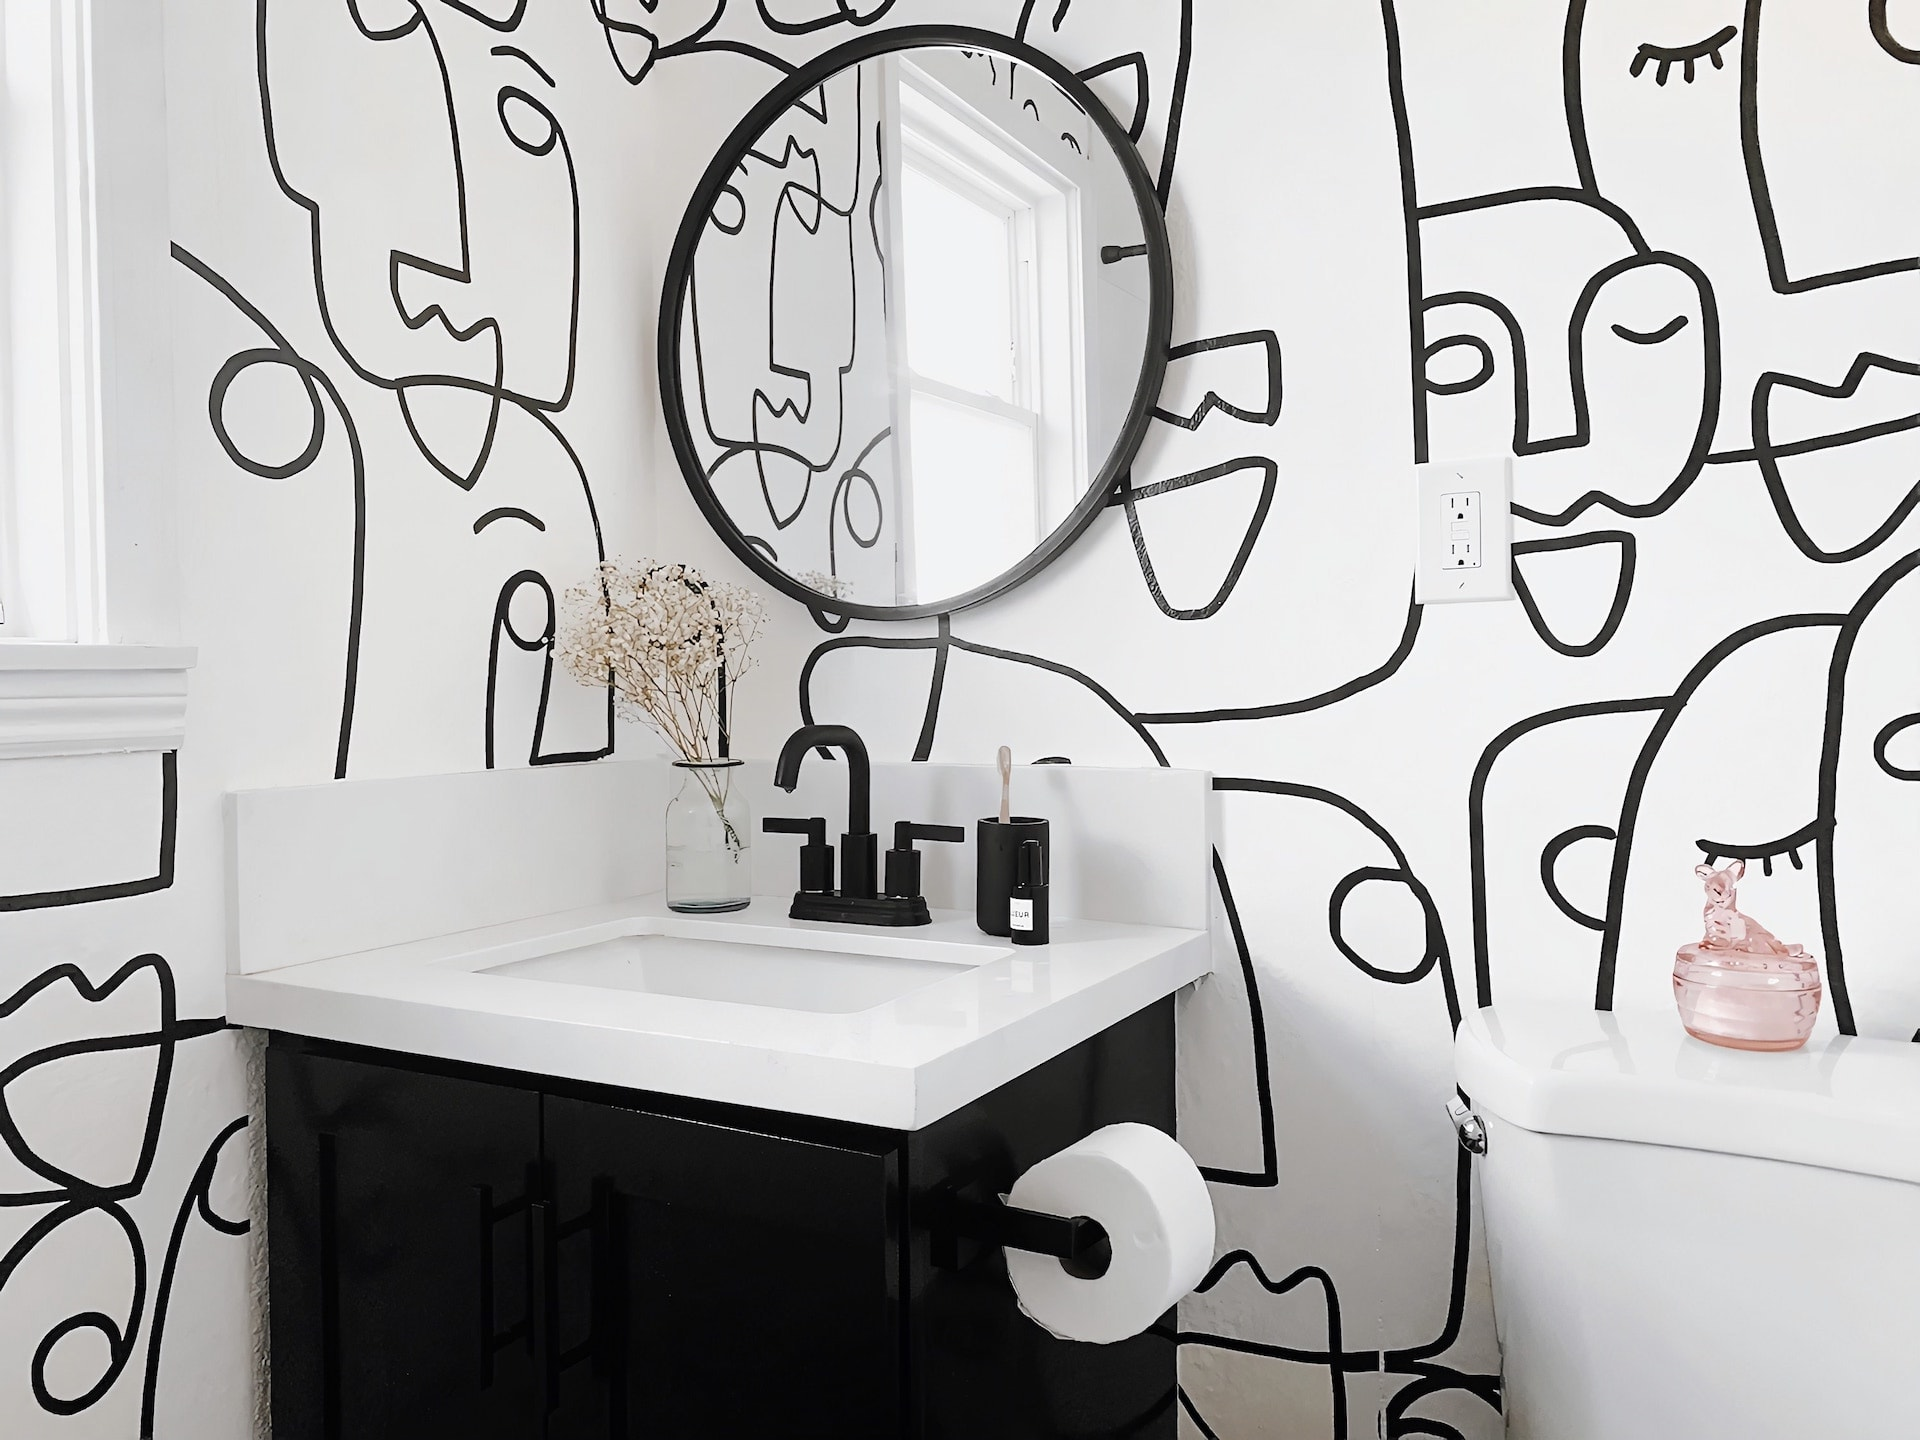 face wallpaper black and white face line drawing wallpaper in bathroom